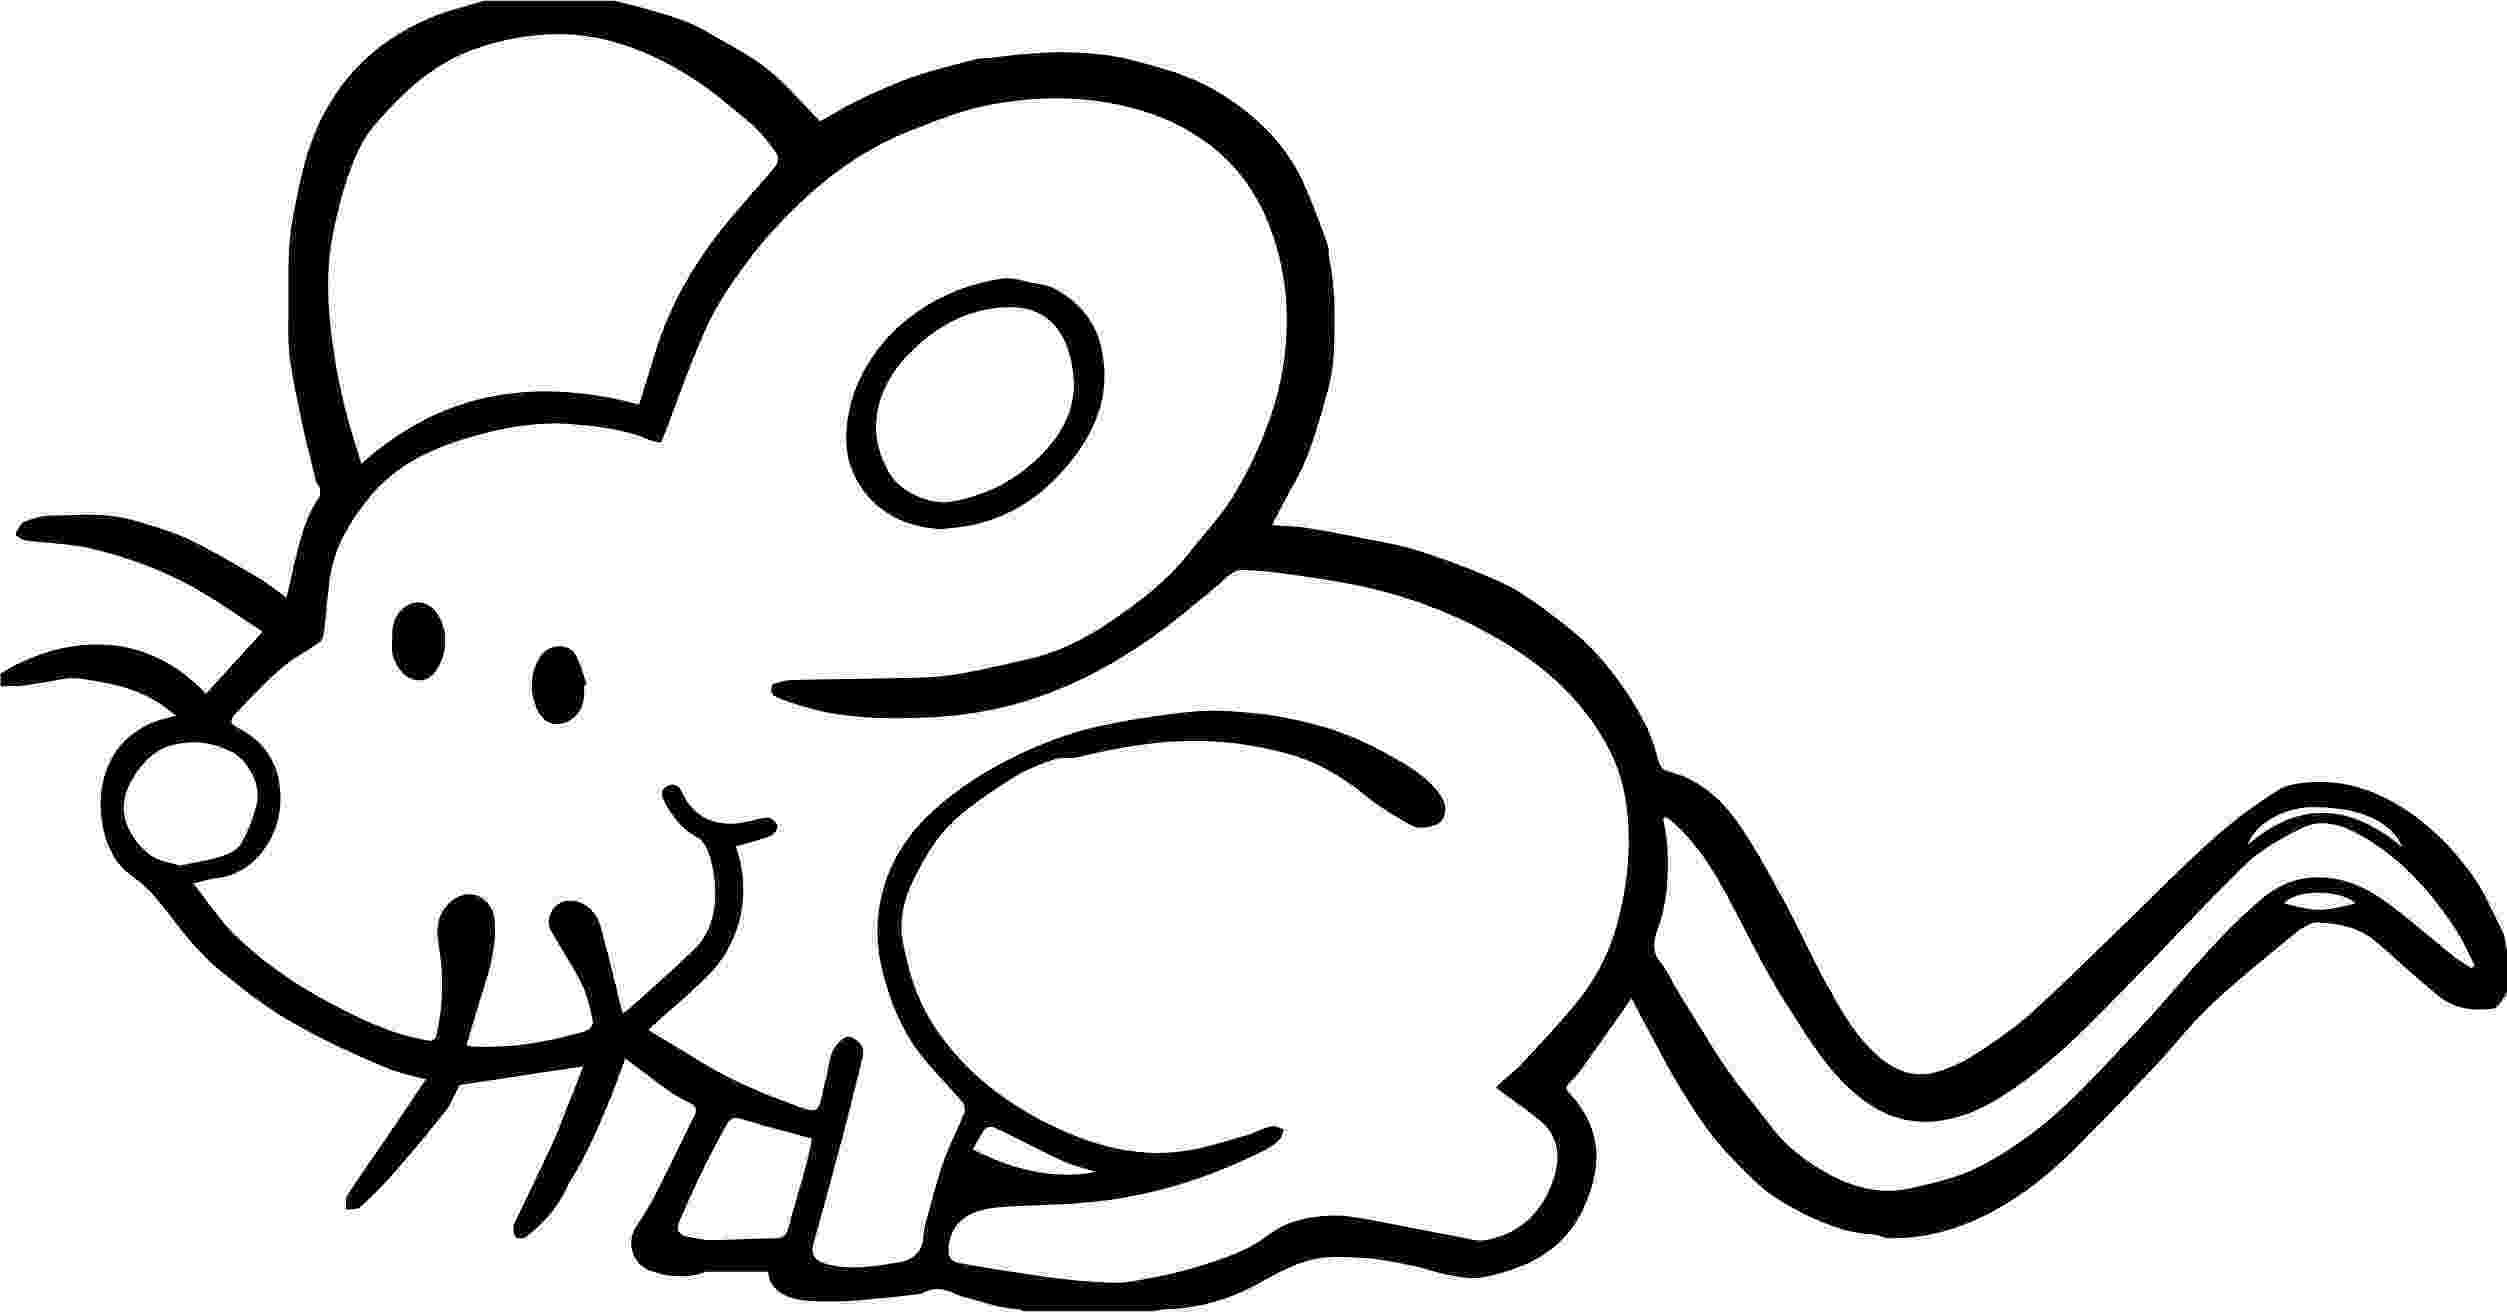 mouse coloring printable mouse coloring pages for kids cool2bkids mouse coloring 1 1